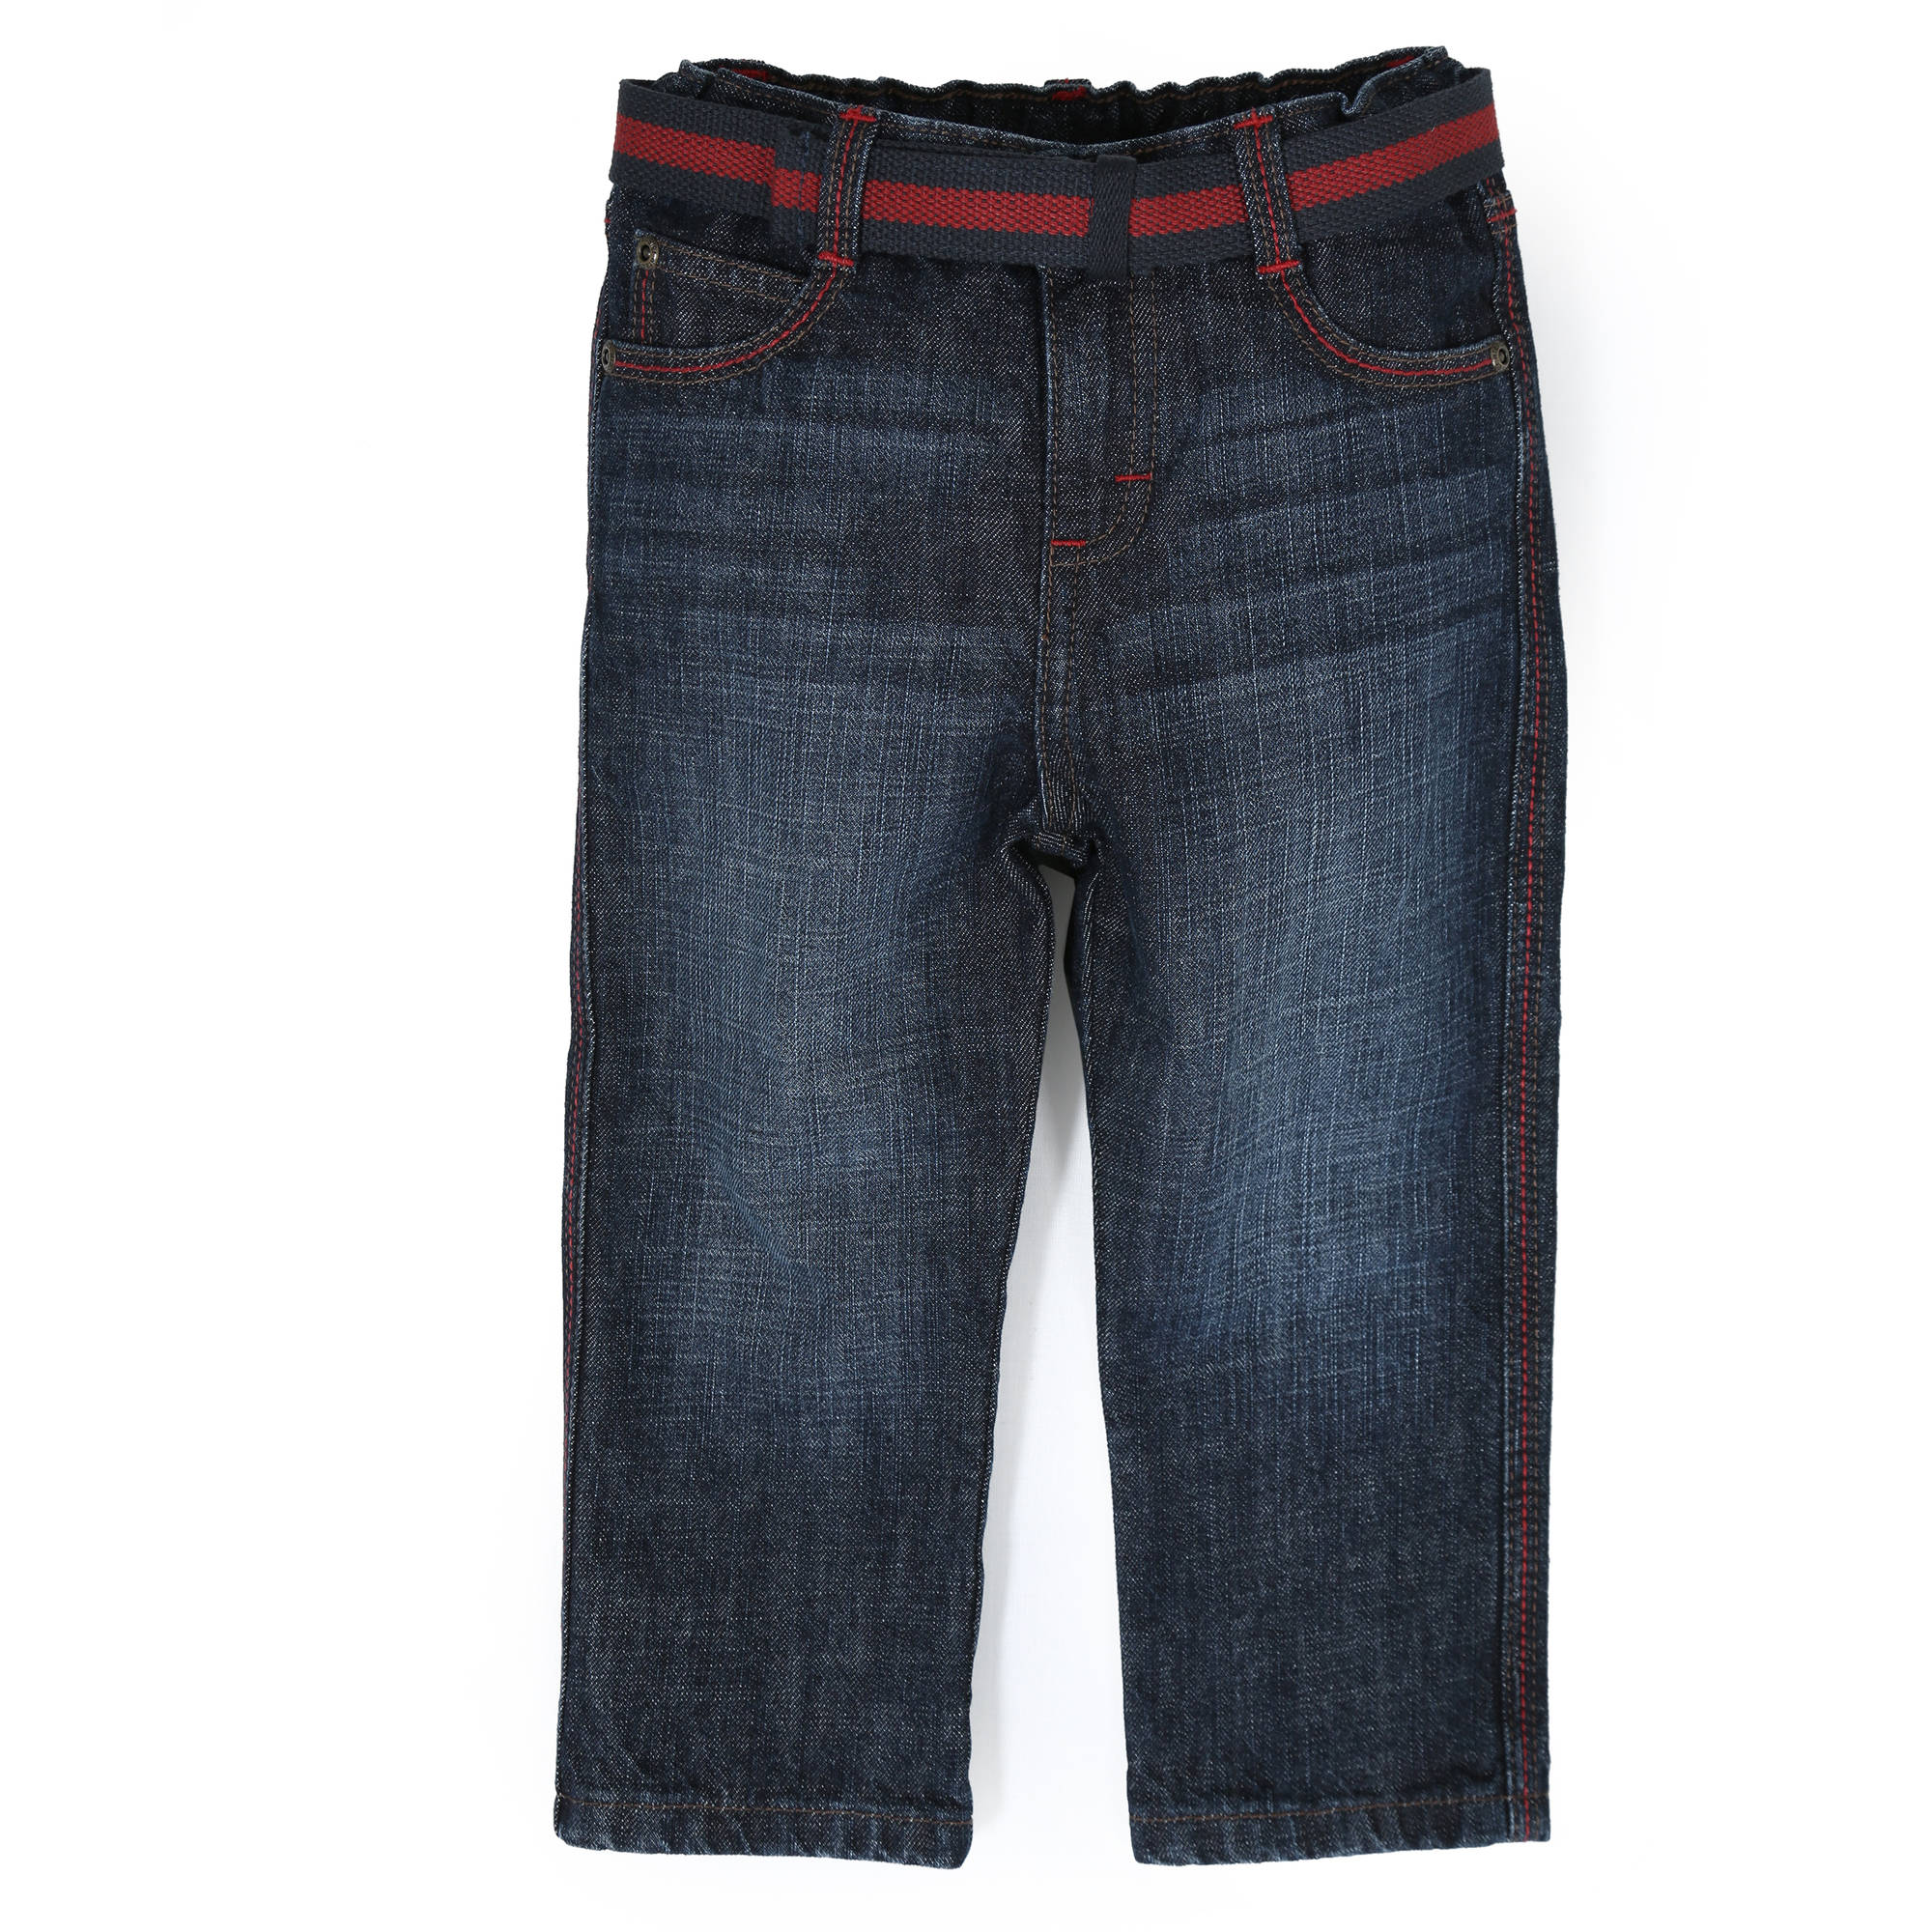 Wrangler Itb Jd Premium Relaxed Jeans